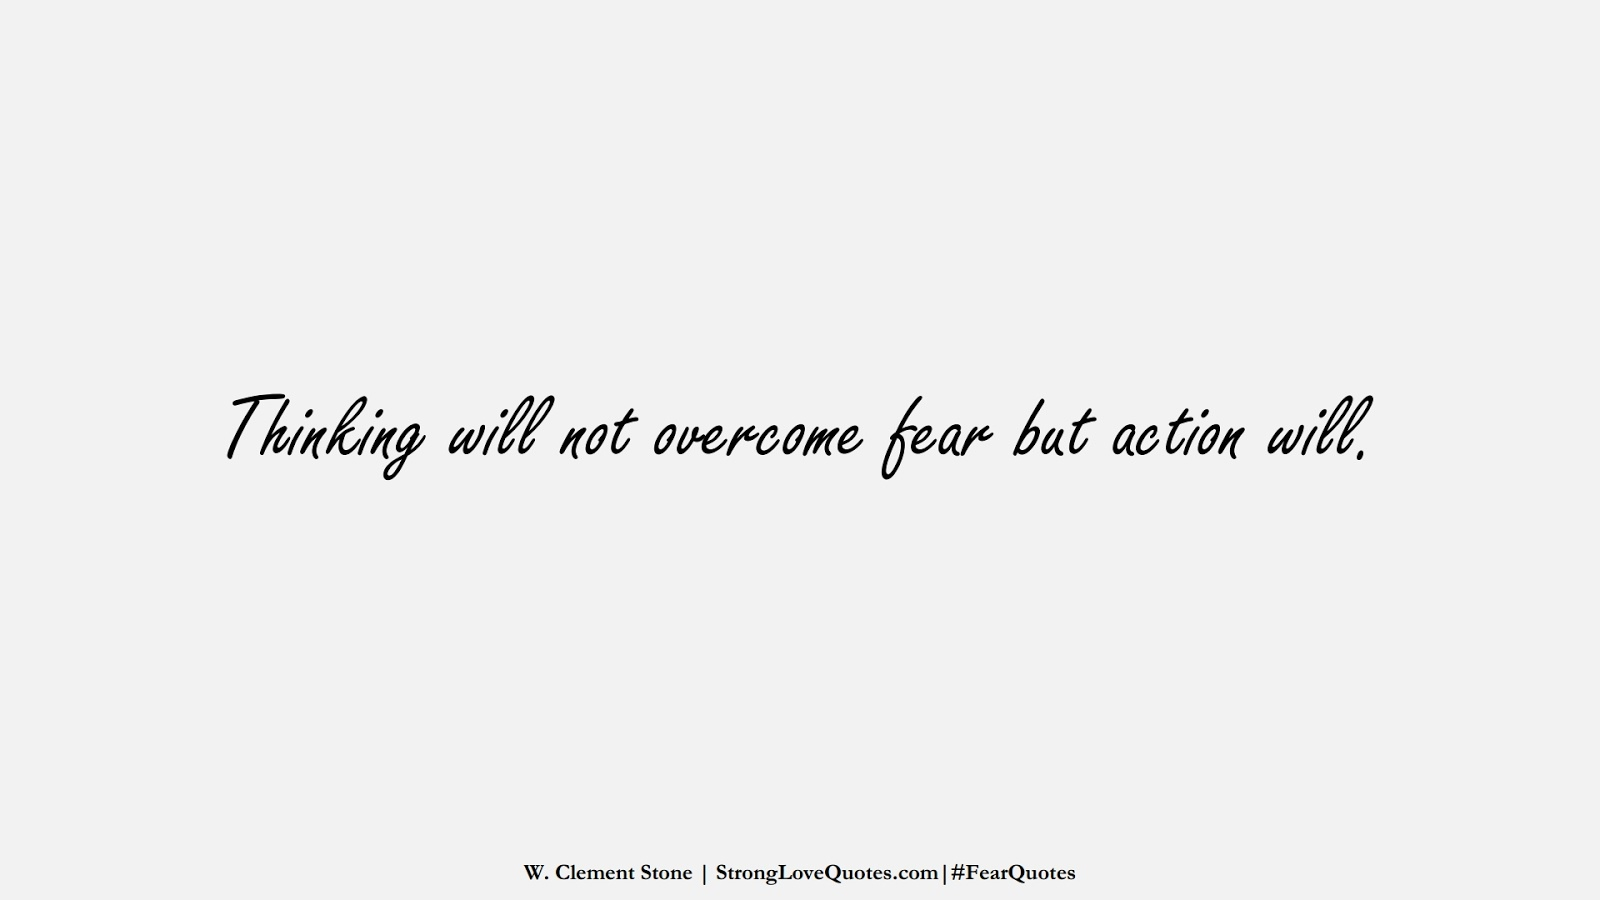 Thinking will not overcome fear but action will. (W. Clement Stone);  #FearQuotes